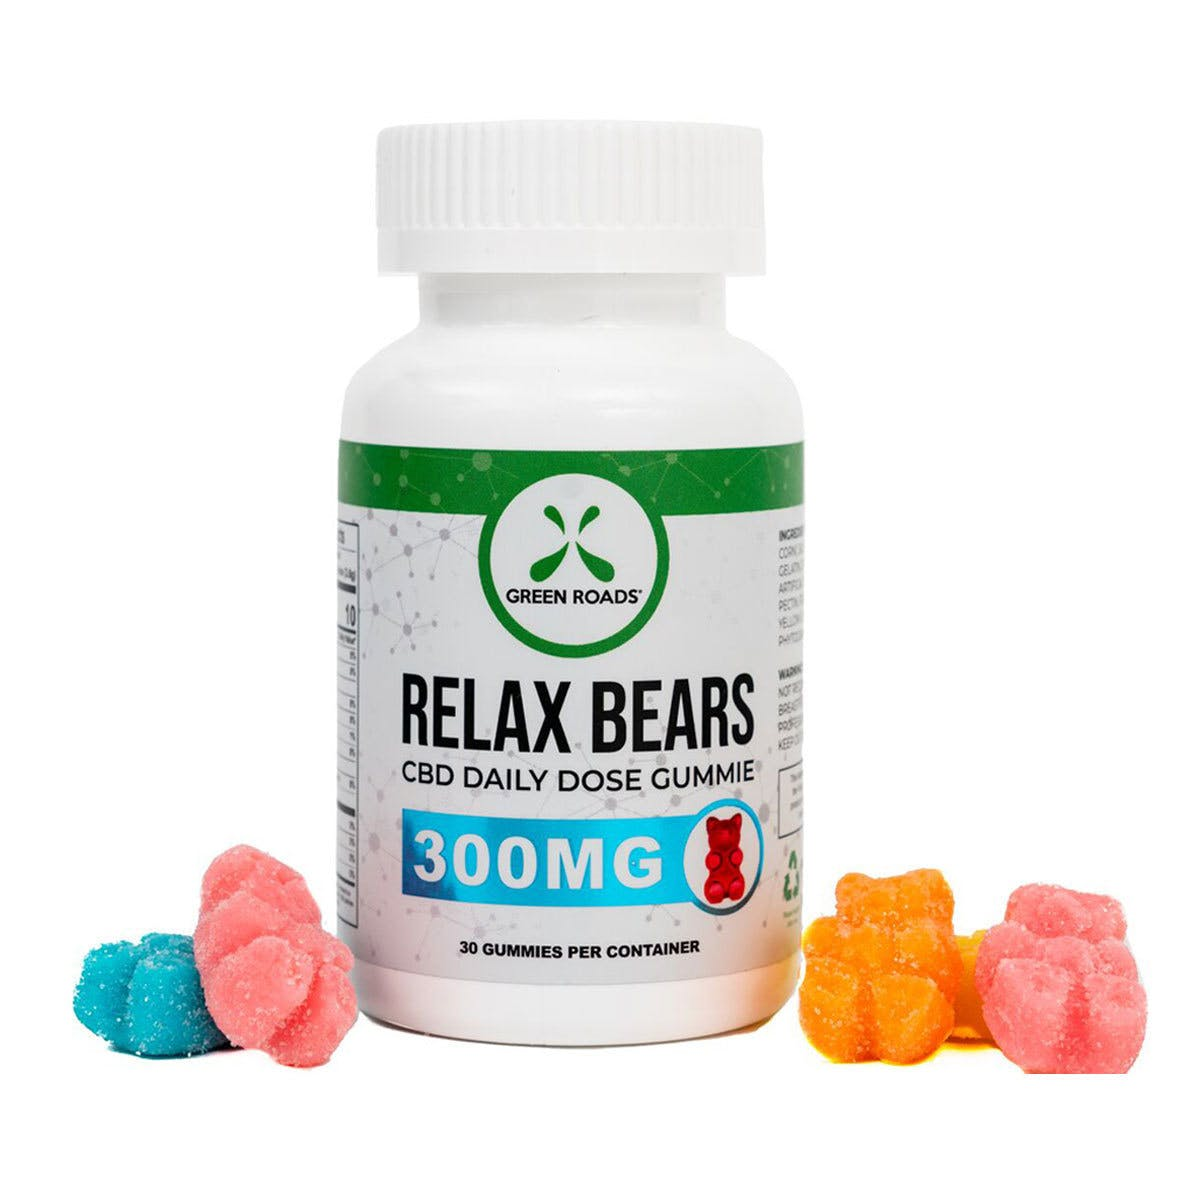 edible-green-roads-cbd-relax-gummy-bears-a-c2-80-c2-93-300mg